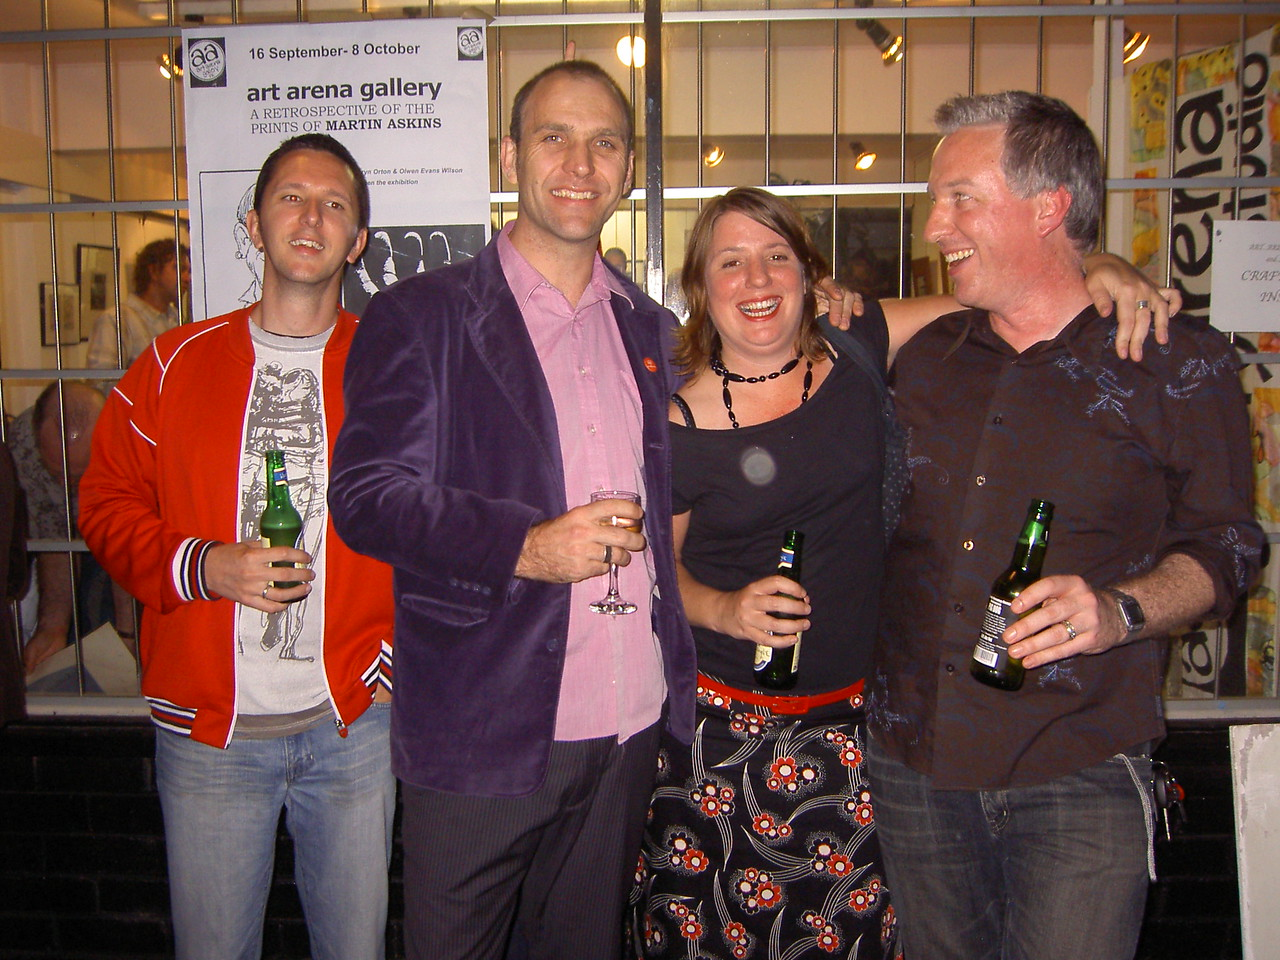 Todd, Tim, Holly and Ben @Martin's art exhibition